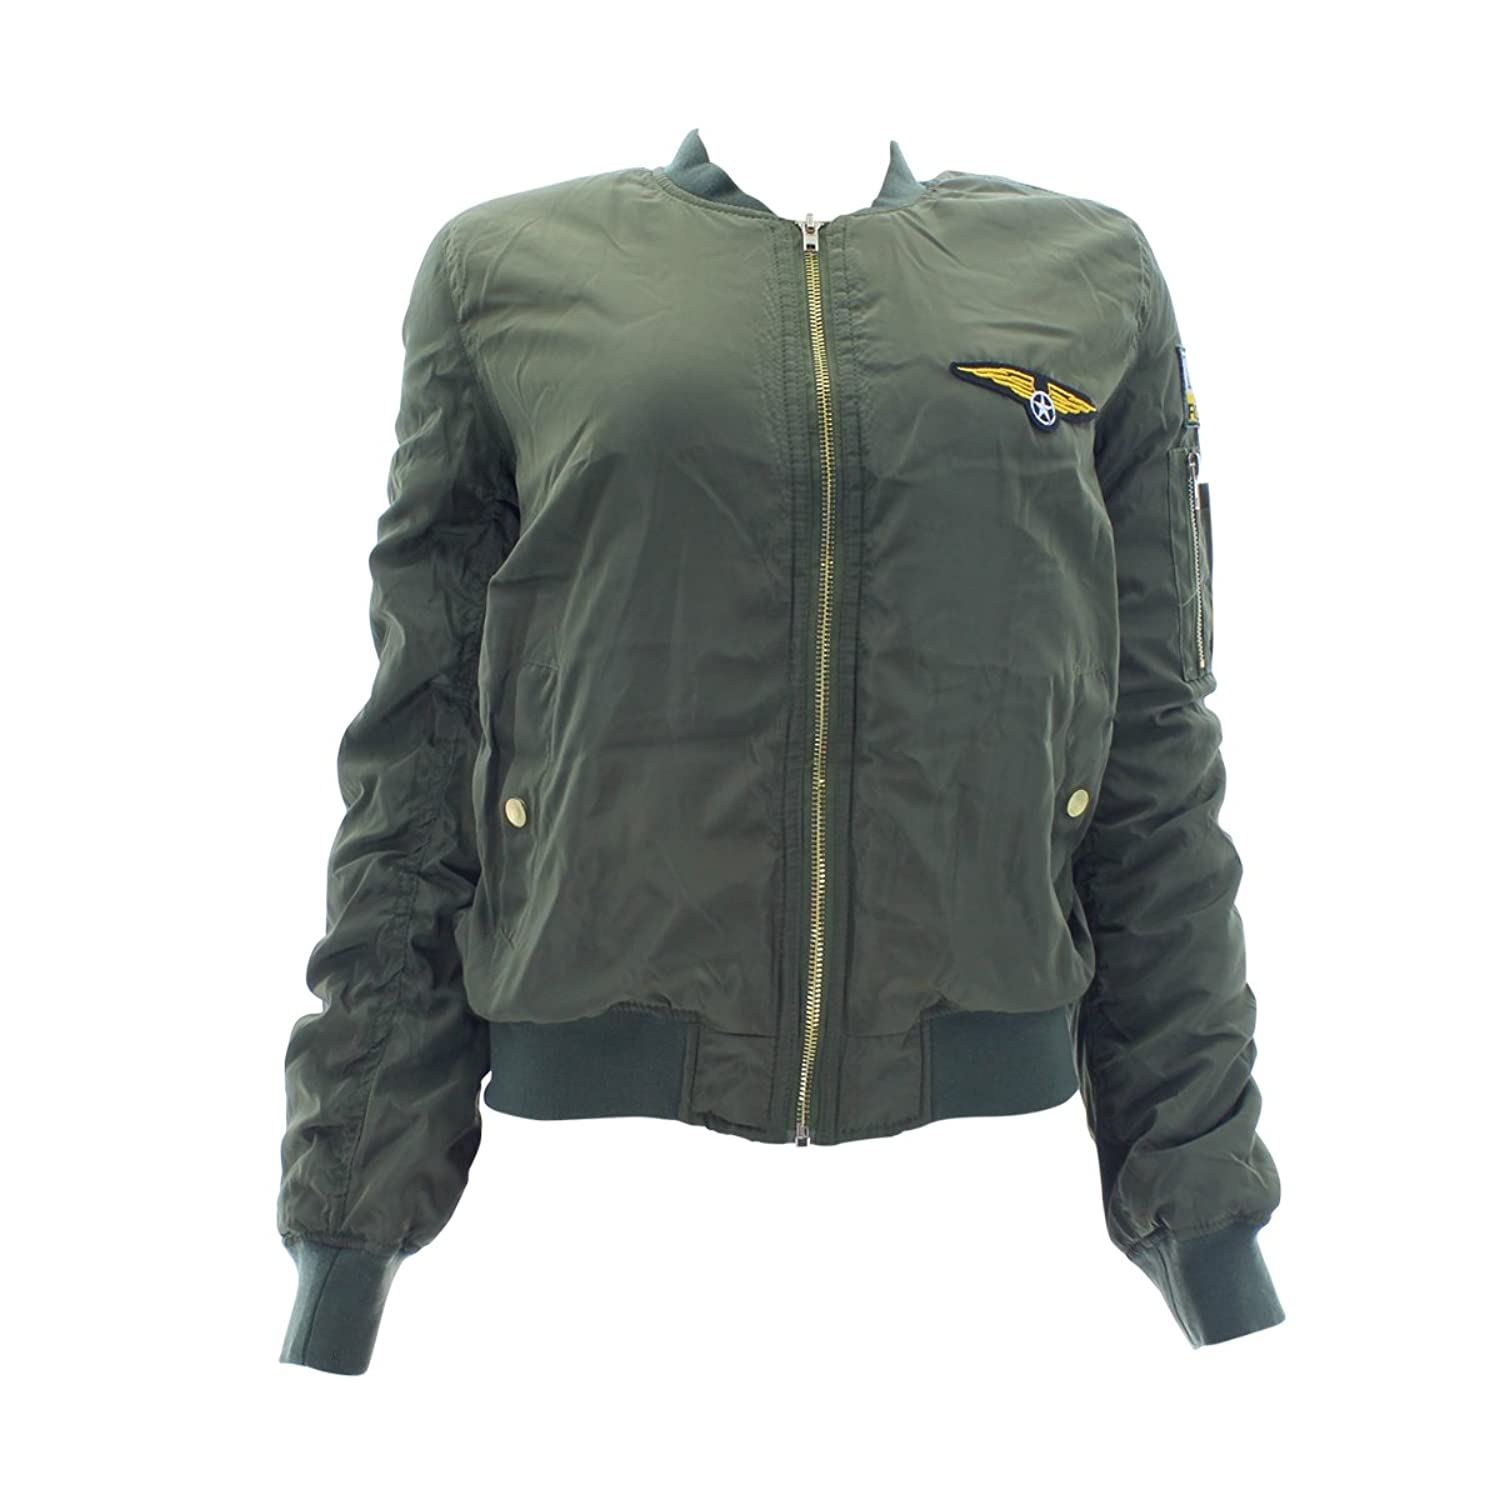 Ellie & Kate - Women's Patches Lined Bomber Jacket - Olive